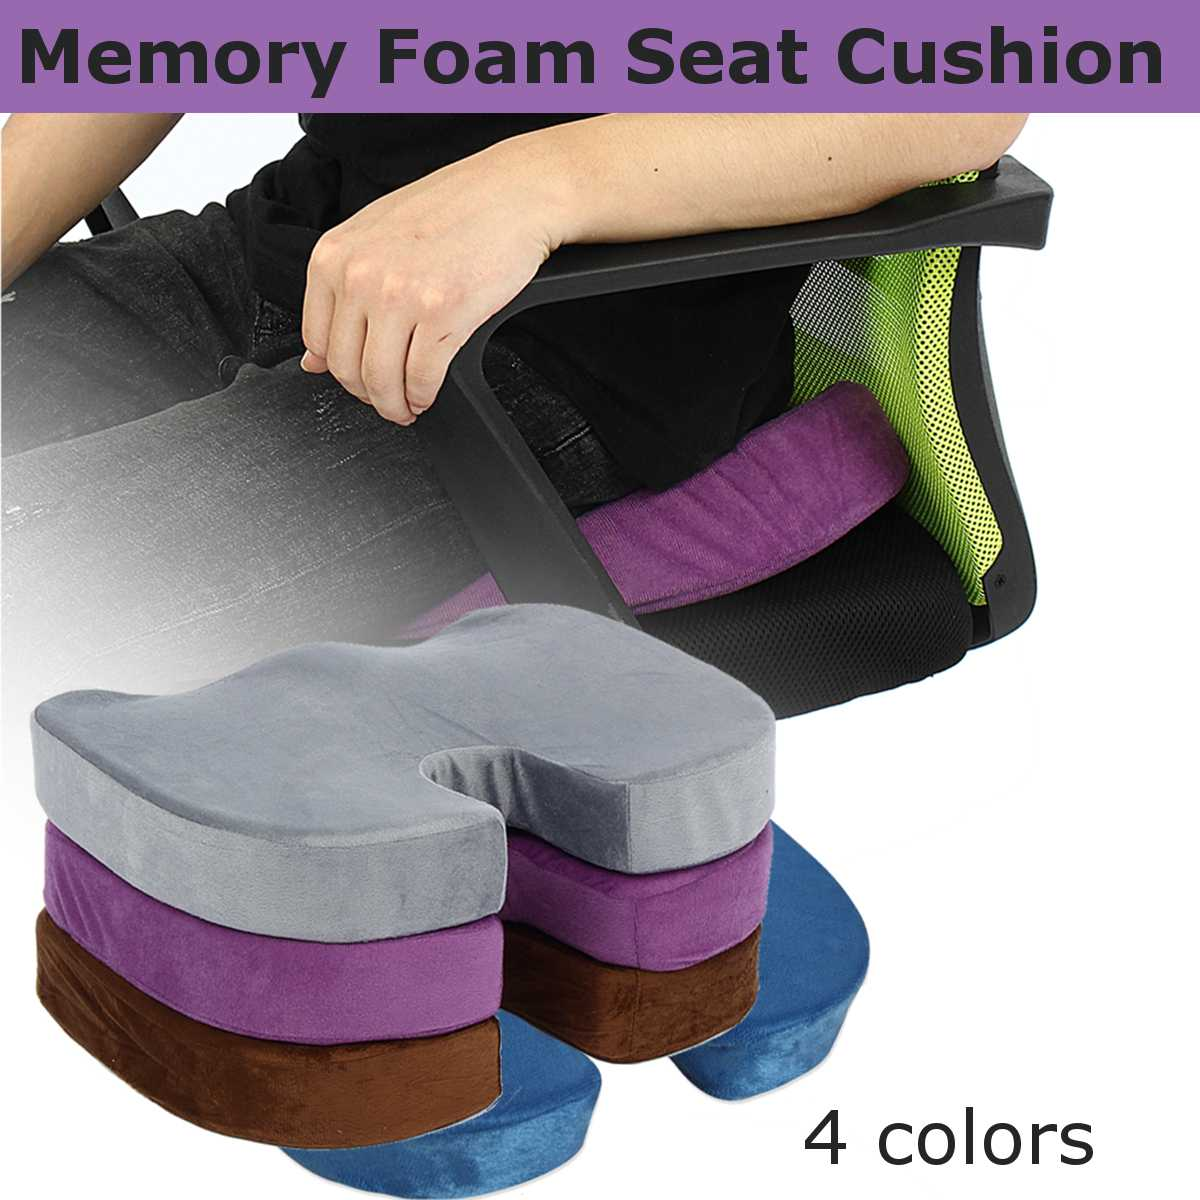 Seat-Cushion Chair Relief-Massage Memory-Foam Coccyx Orthopedic Lumbar Travel Anti-Hemorrhoid